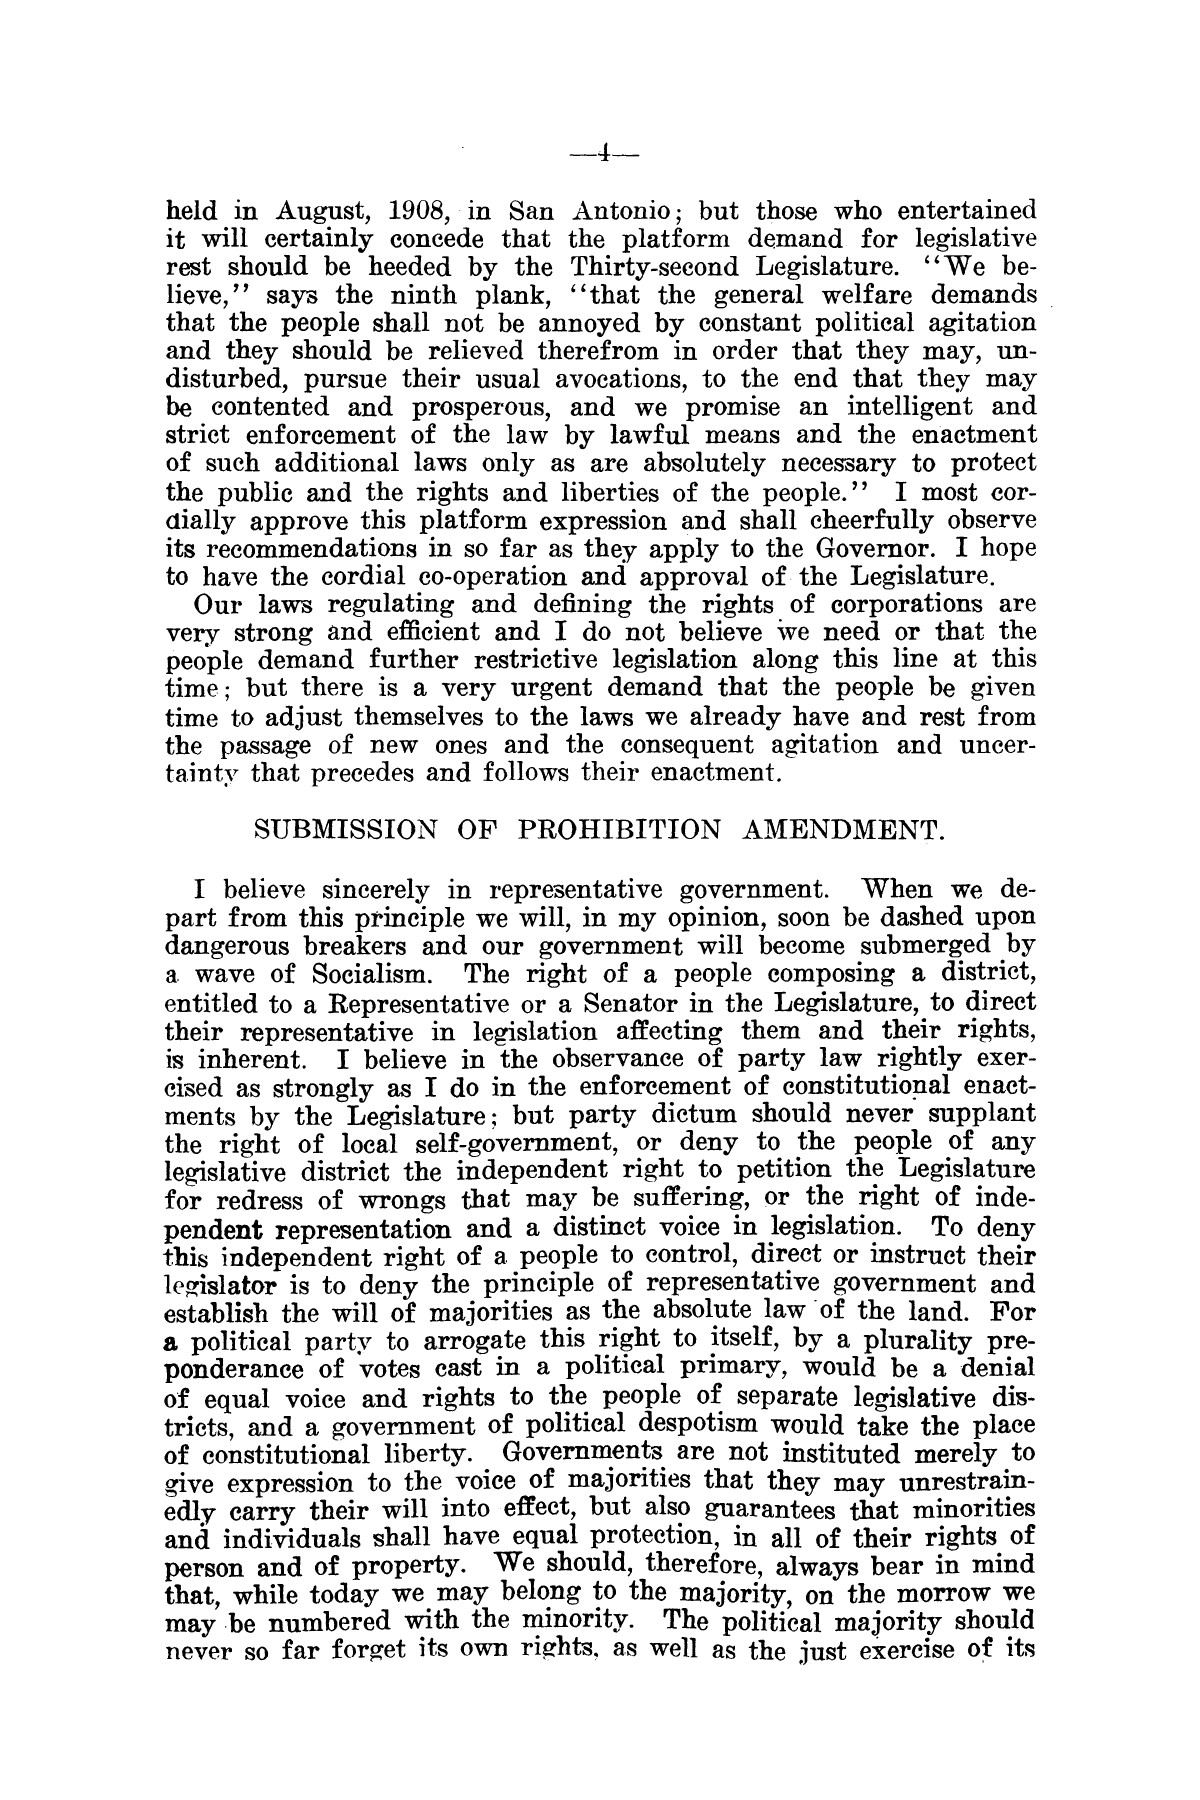 Message of Governor O. B. Colquitt to the thirty-second legislature of Texas.                                                                                                      [Sequence #]: 4 of 24